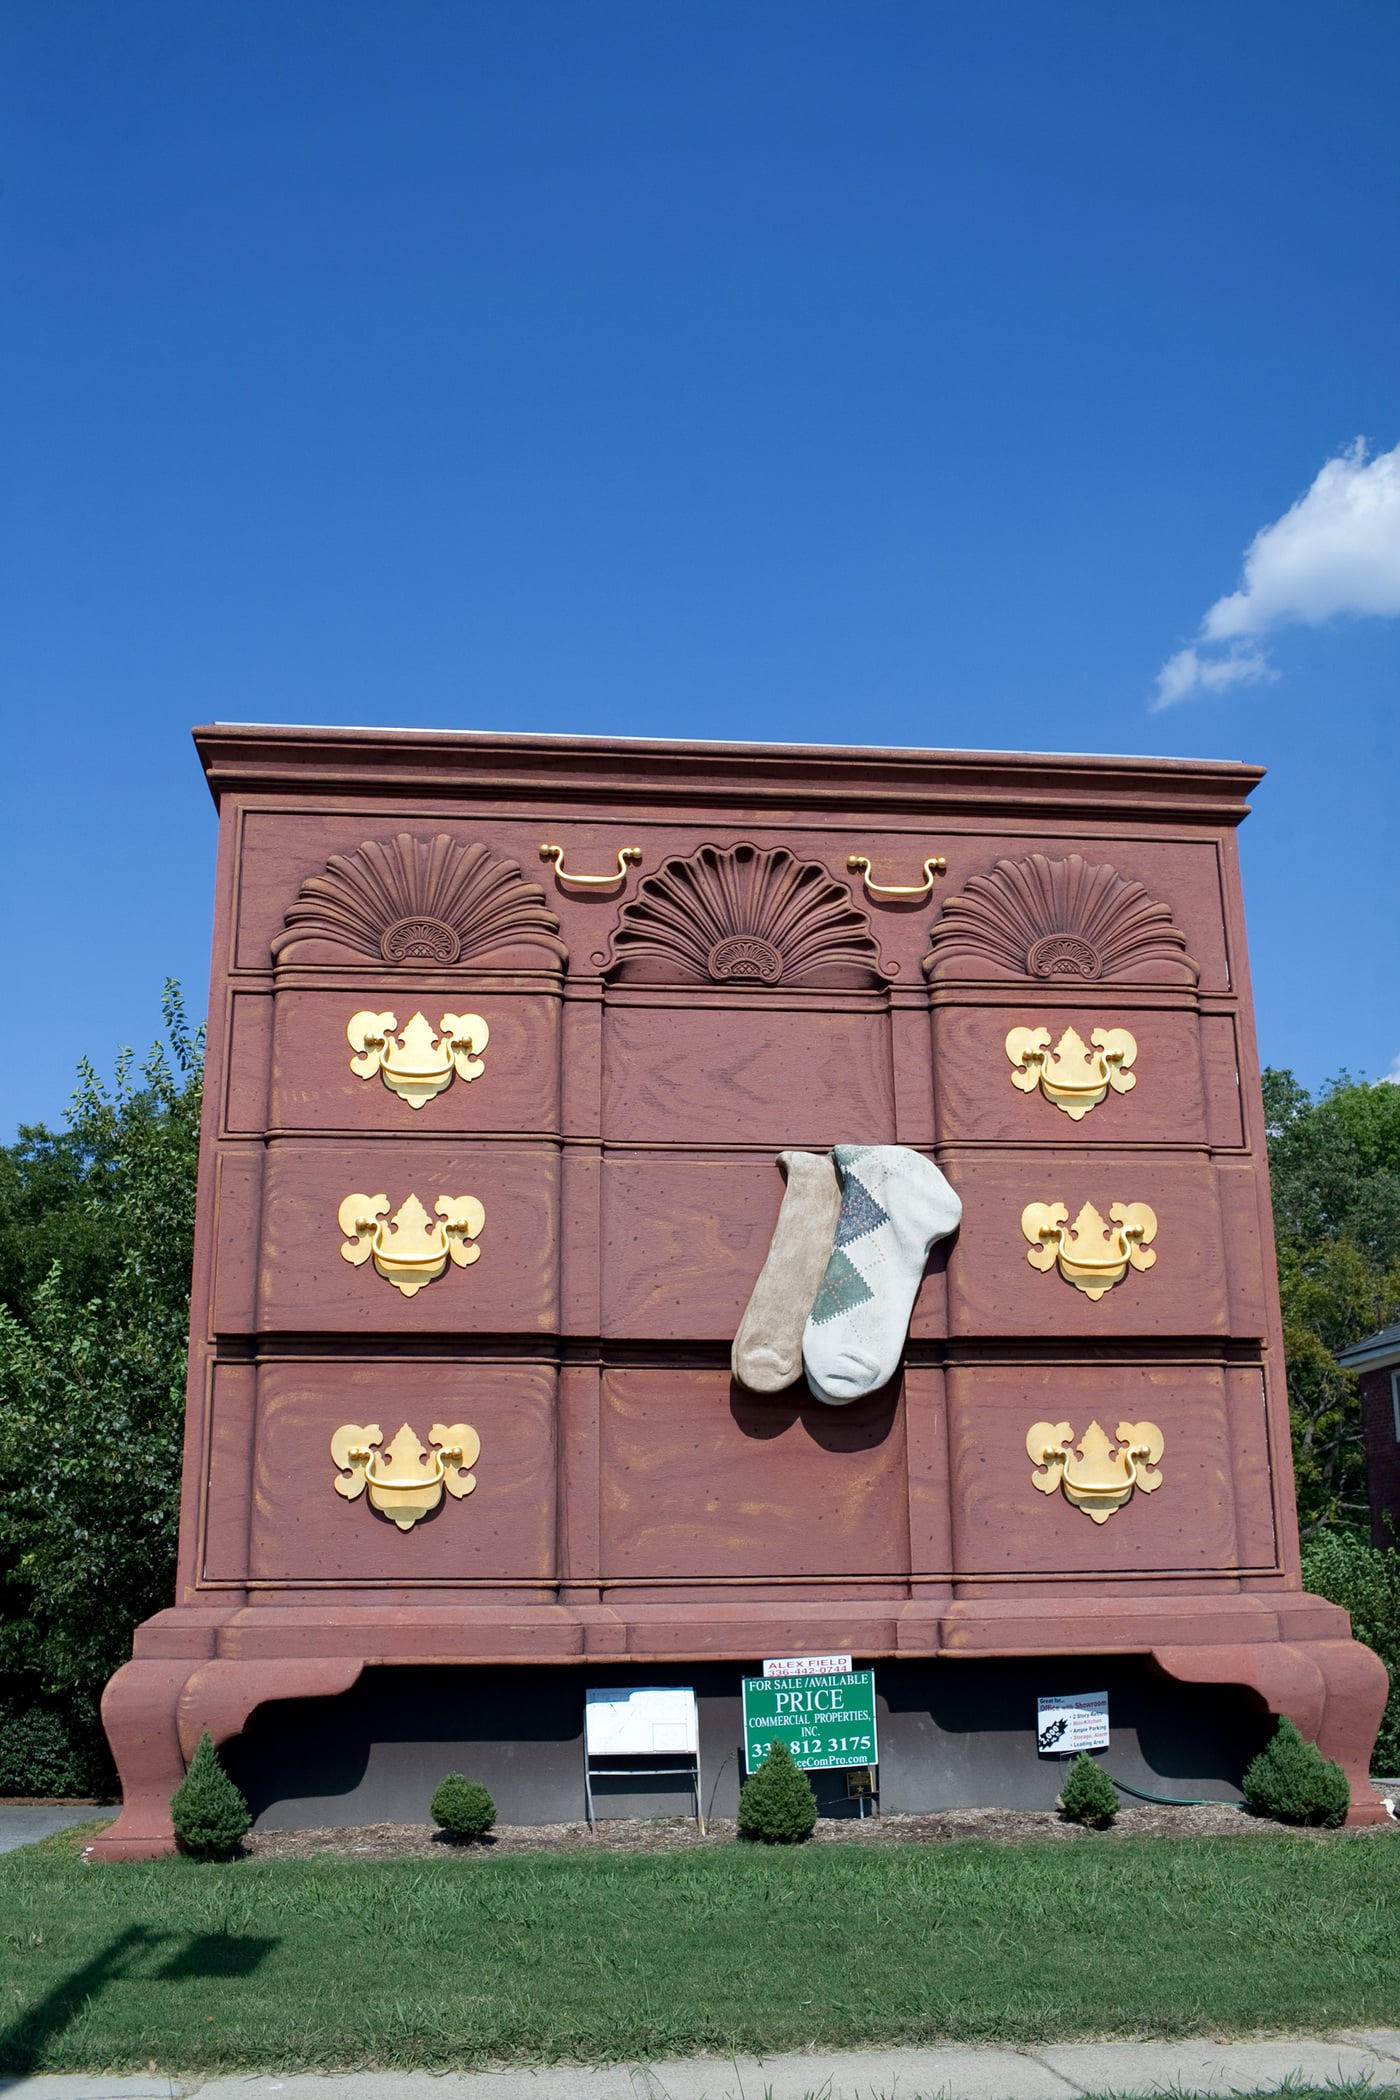 Virginia/North Carolina Road Trip - World's Largest Chest of Drawers in High Point, North Carolina